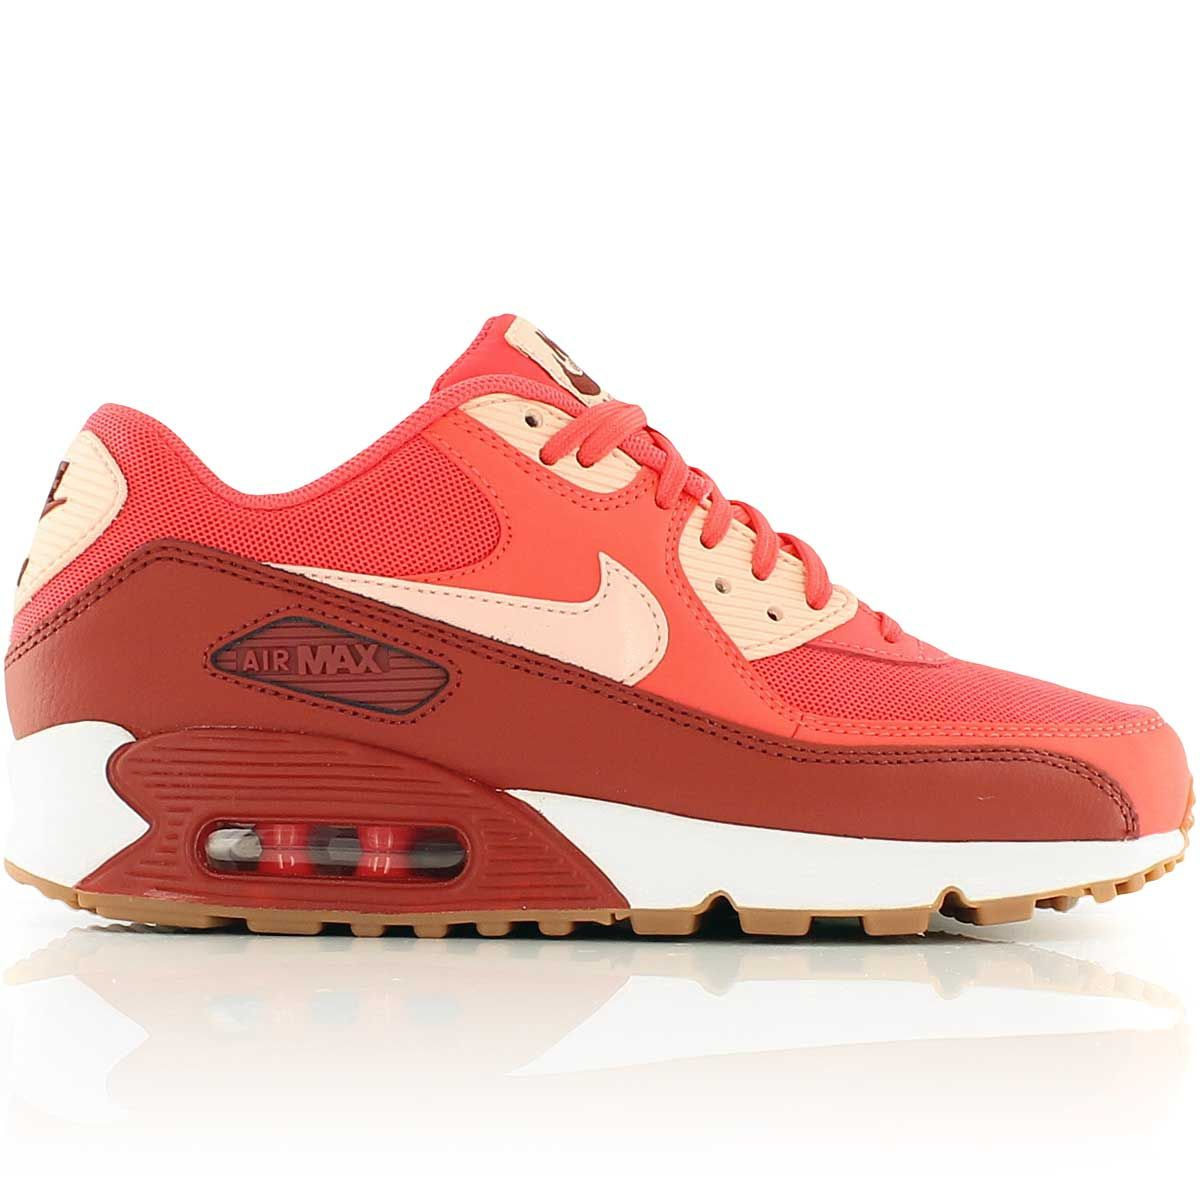 first look new appearance new arrivals nike WMNS AIR MAX 90 ESSENTIAL EMBER GLOW/ARCTIC ORANGE-DARK ...